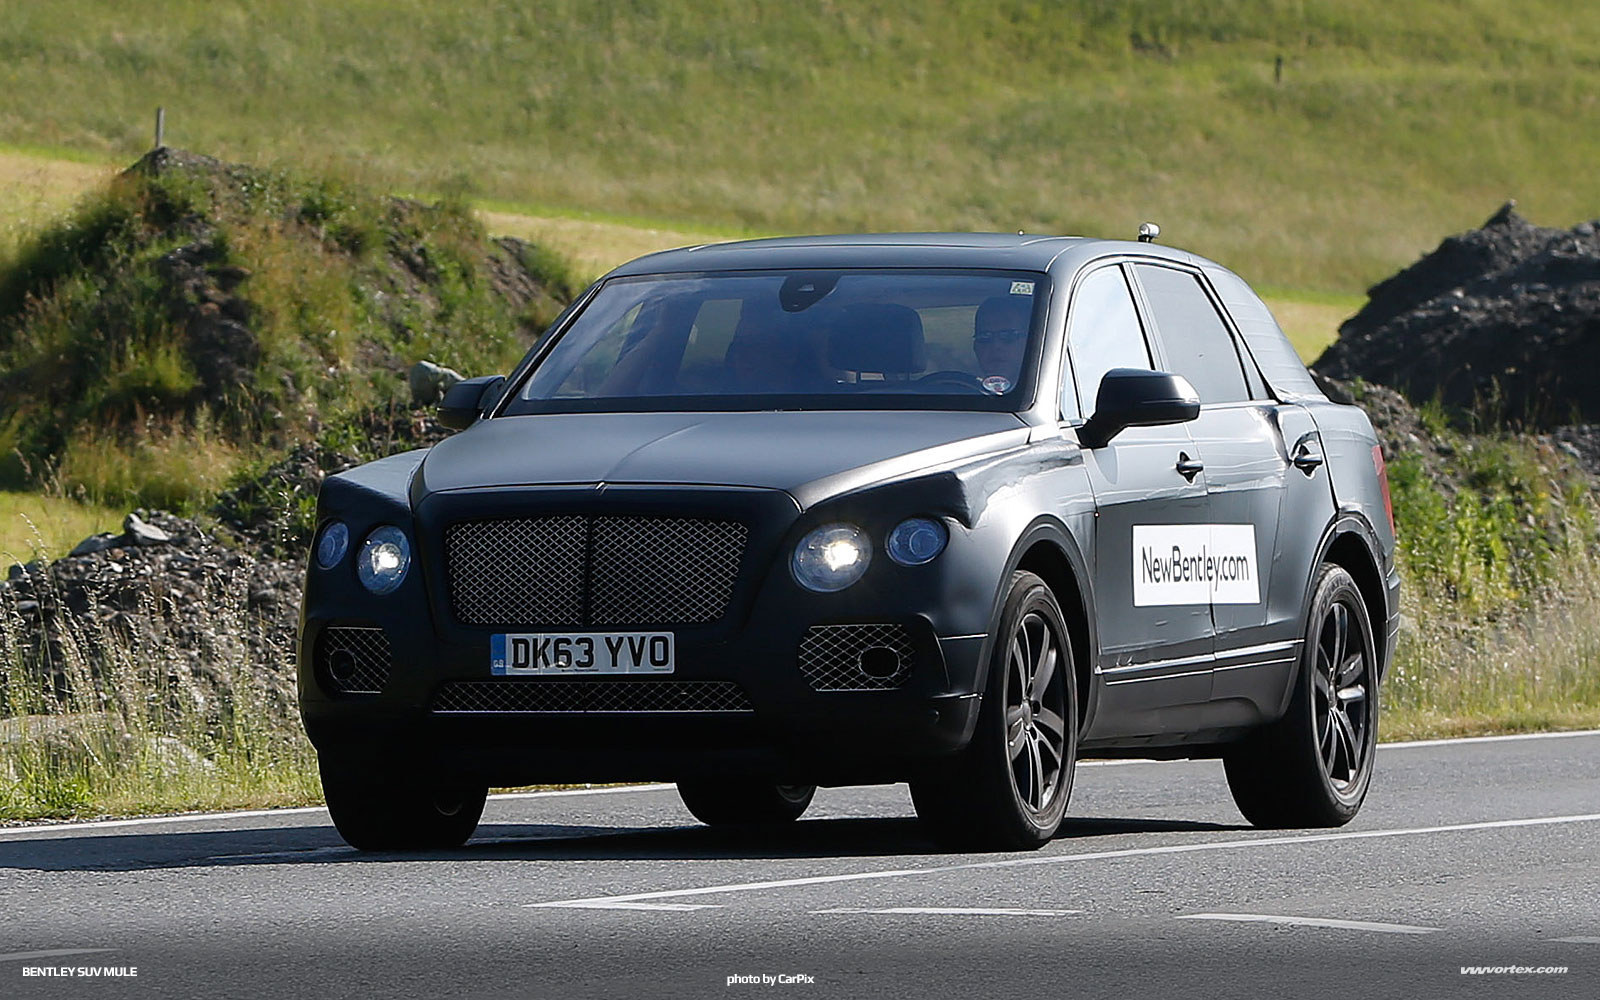 bentley suv mule spy photos 370 150x150